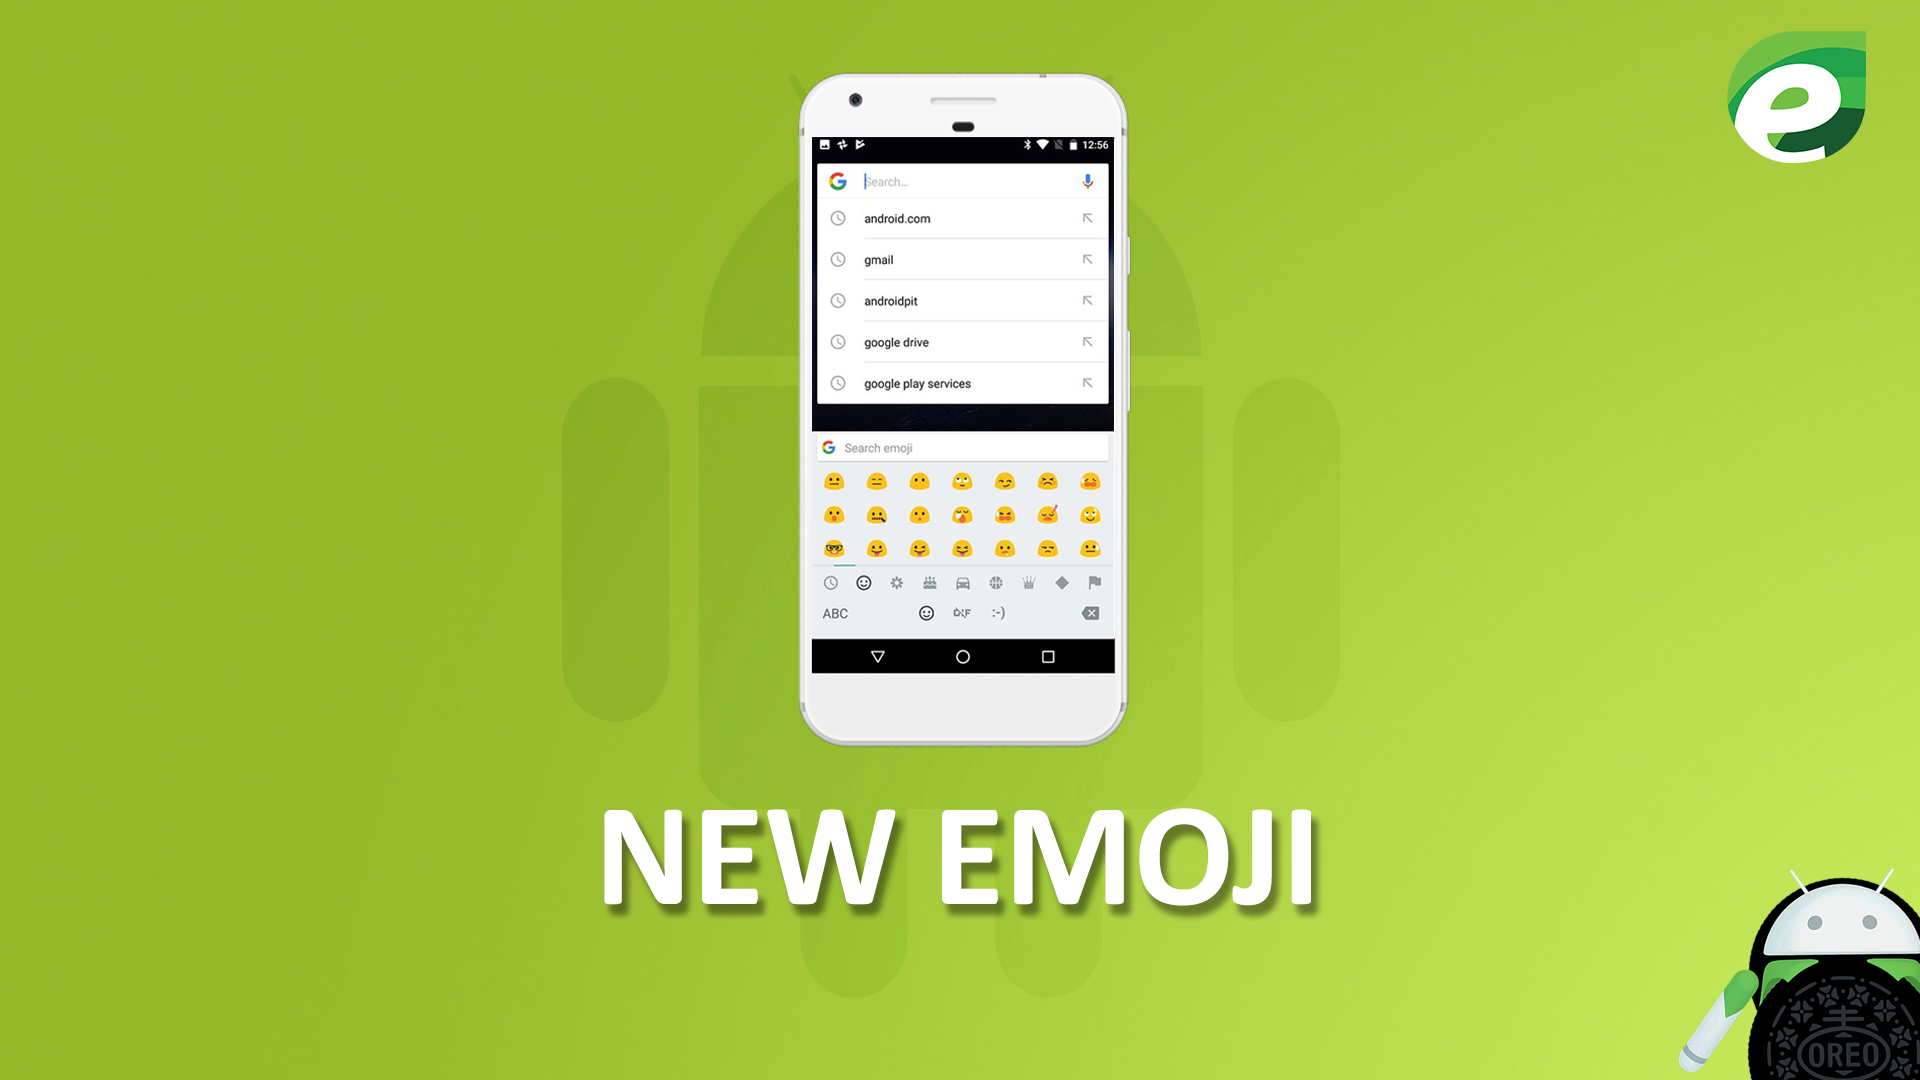 Android oreo- New Emojis